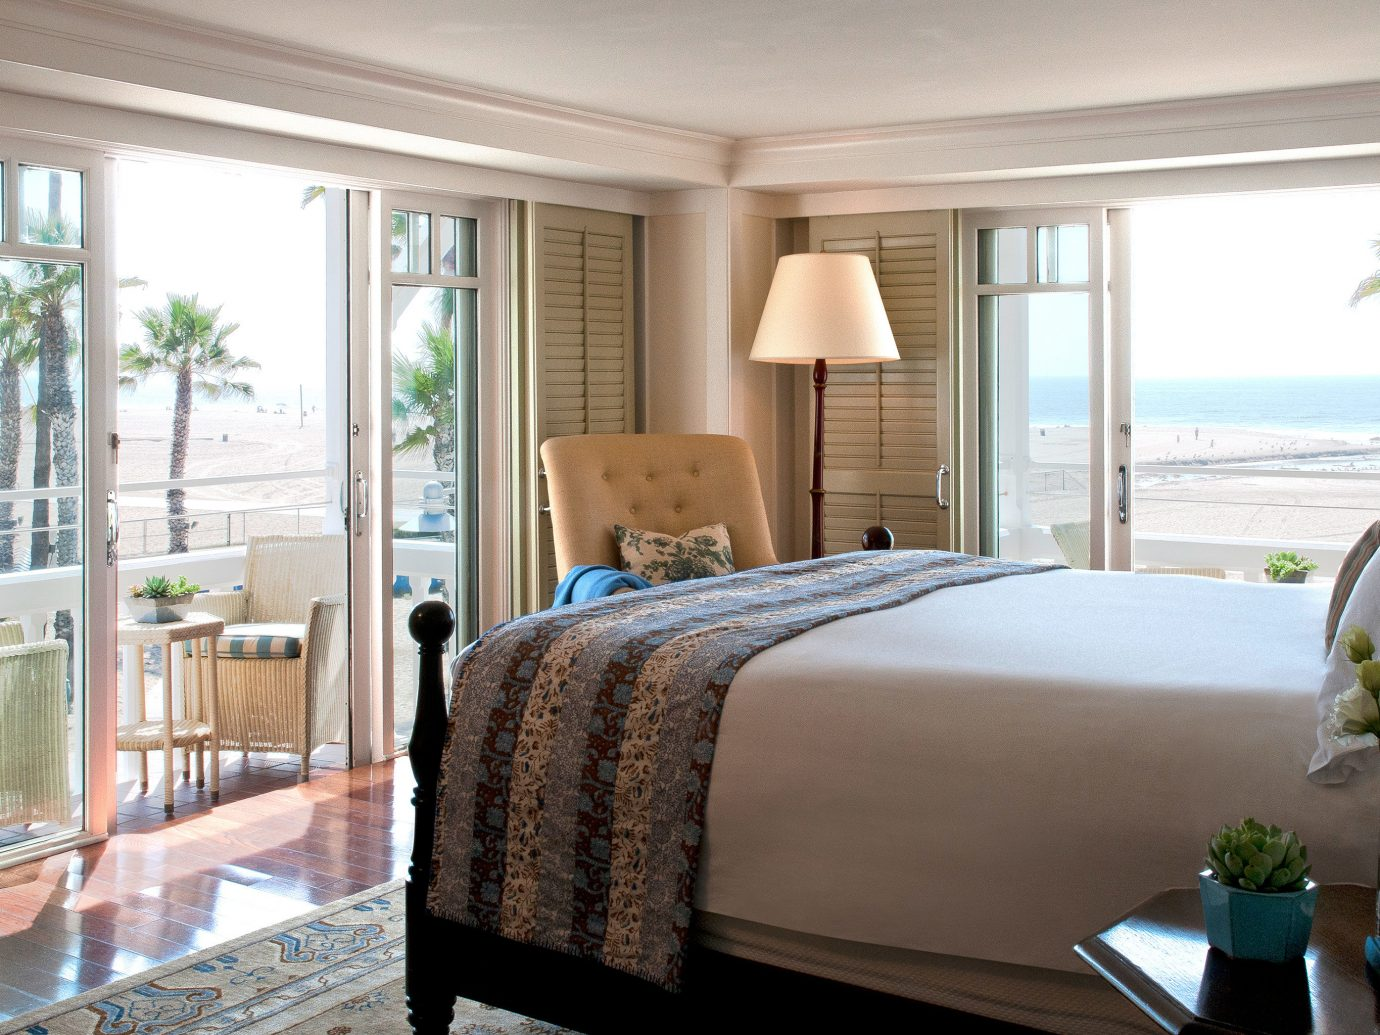 Bedroom at Shutters on the Beach, CA